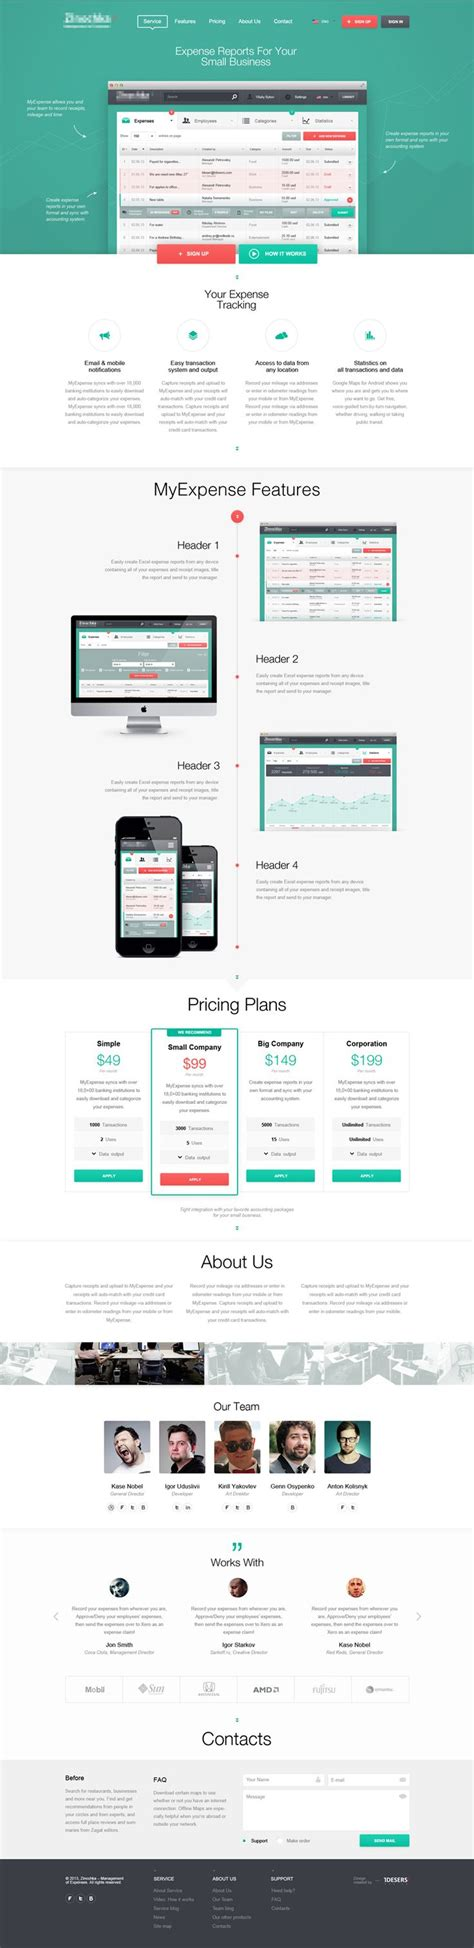 web layout design price 48 best images about pricing on pinterest ux design